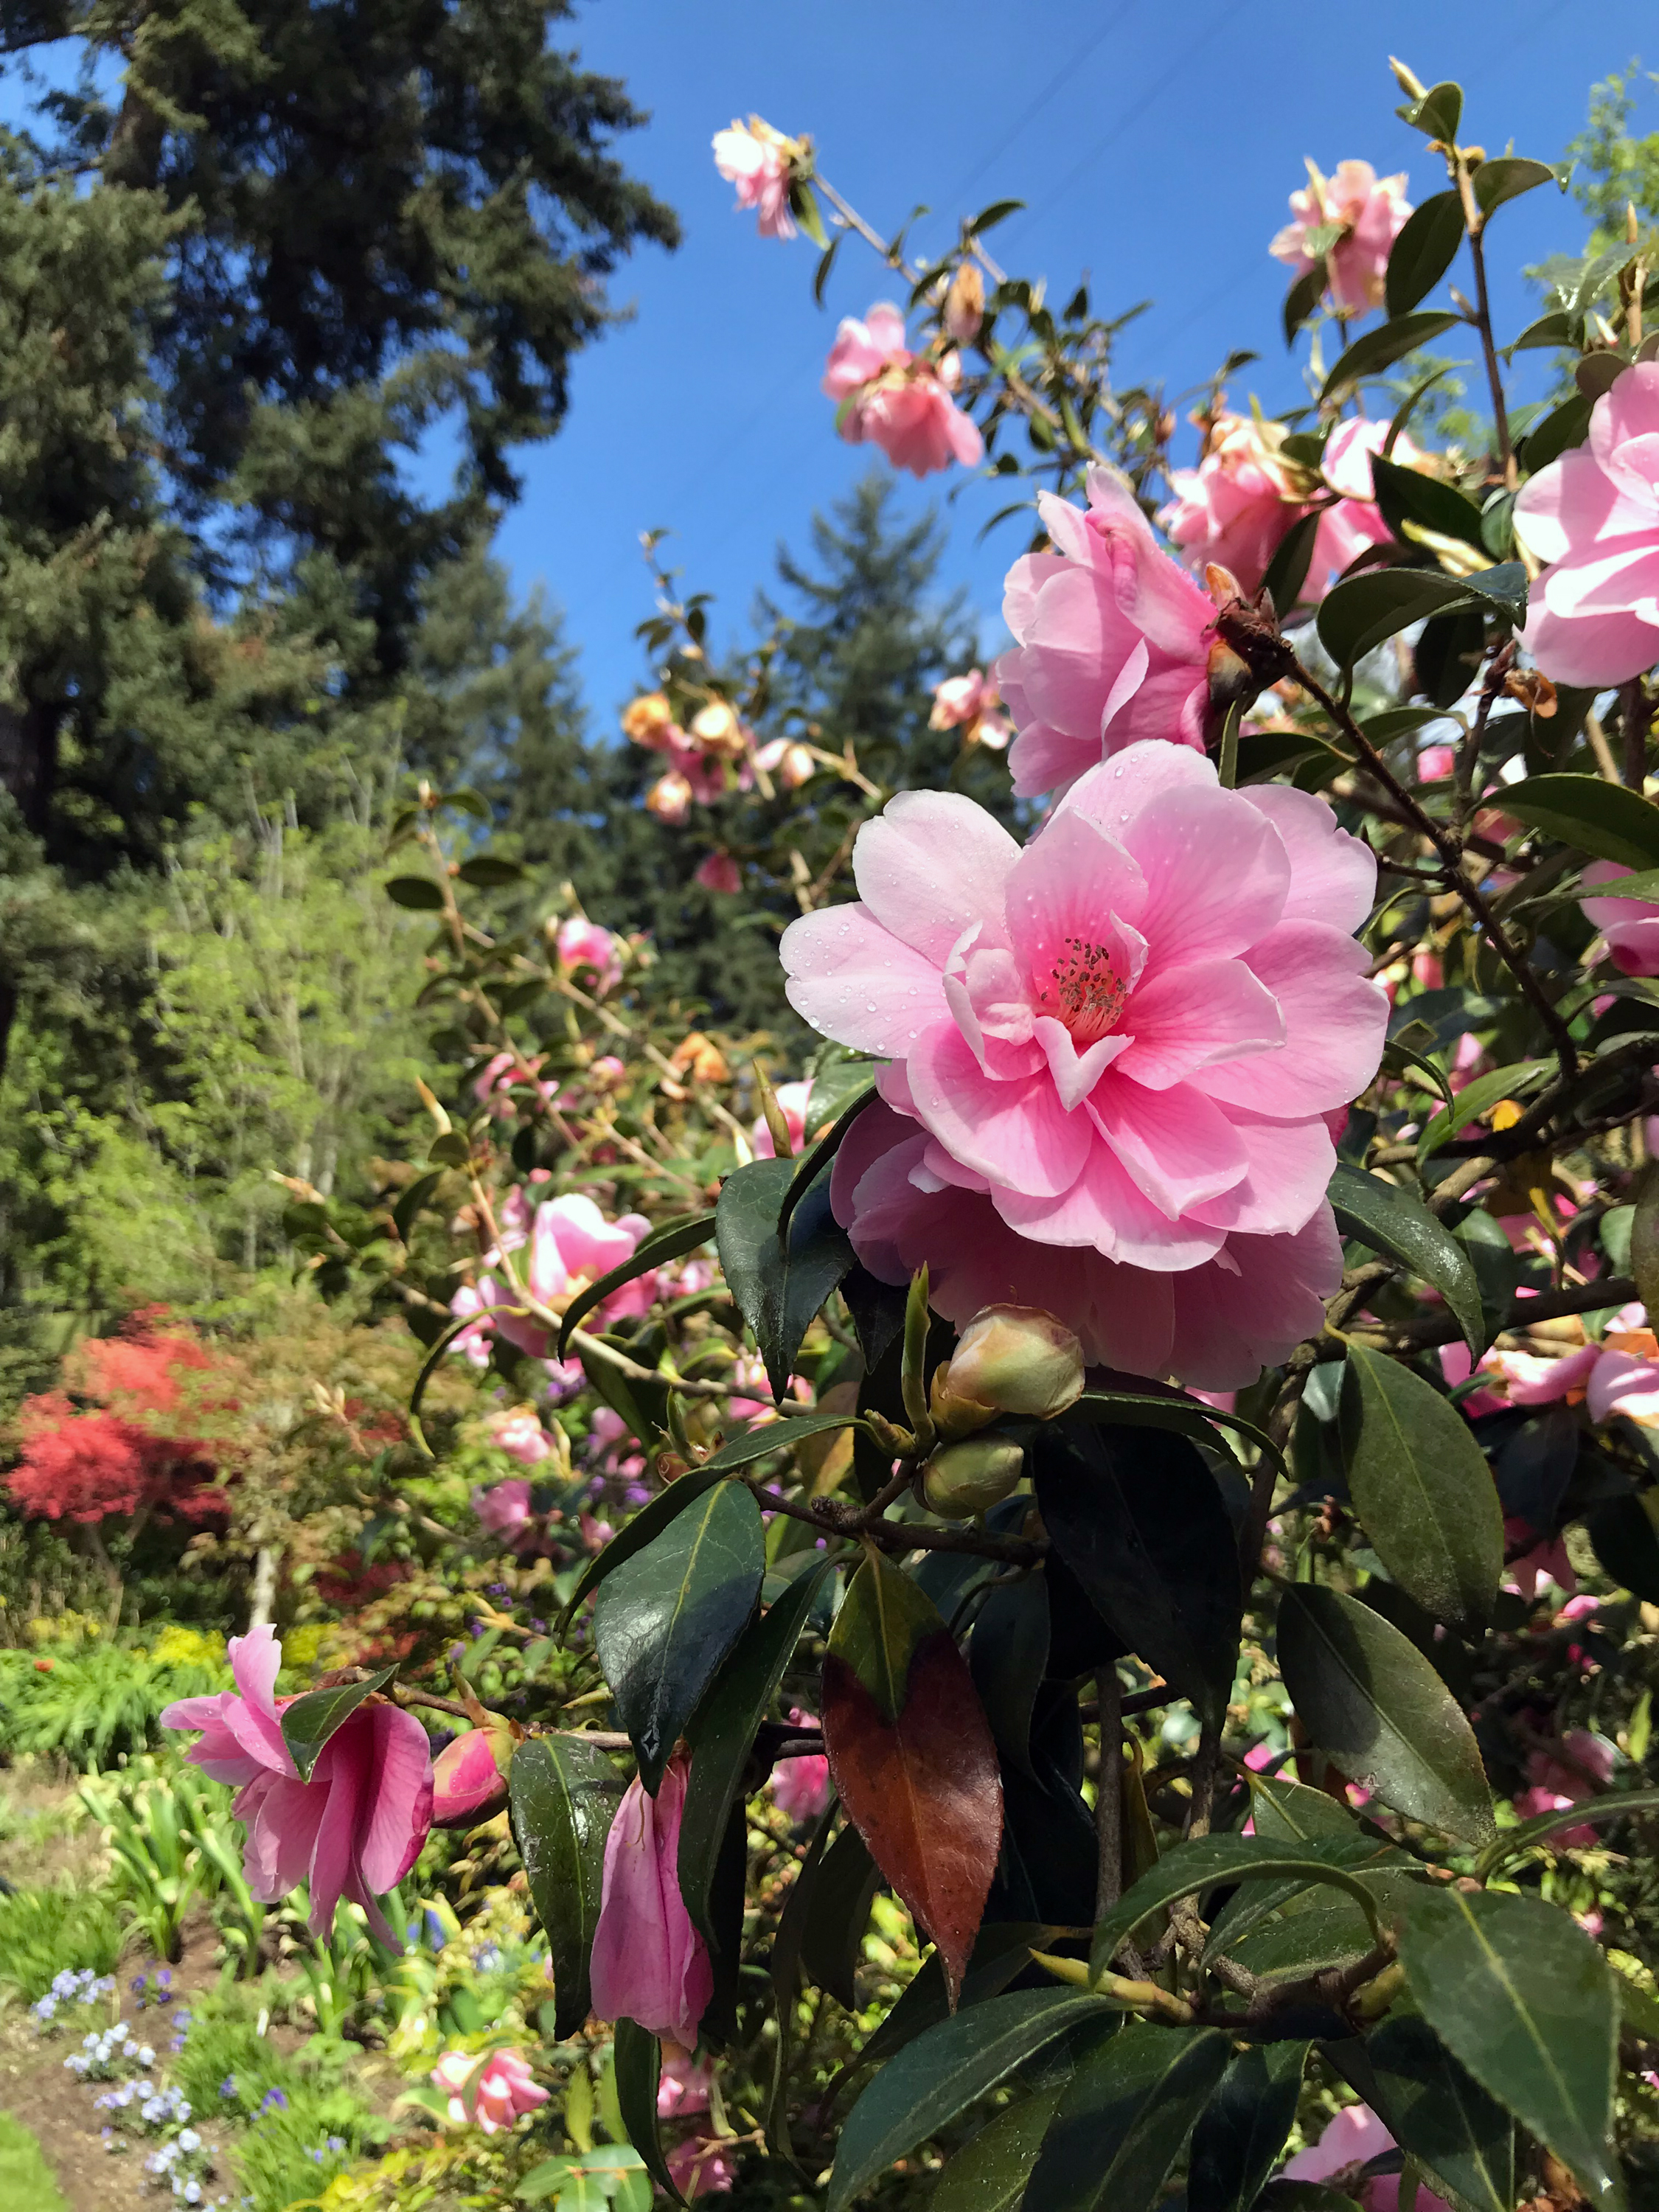 Camellias in Bloom at a Garden in Seattle